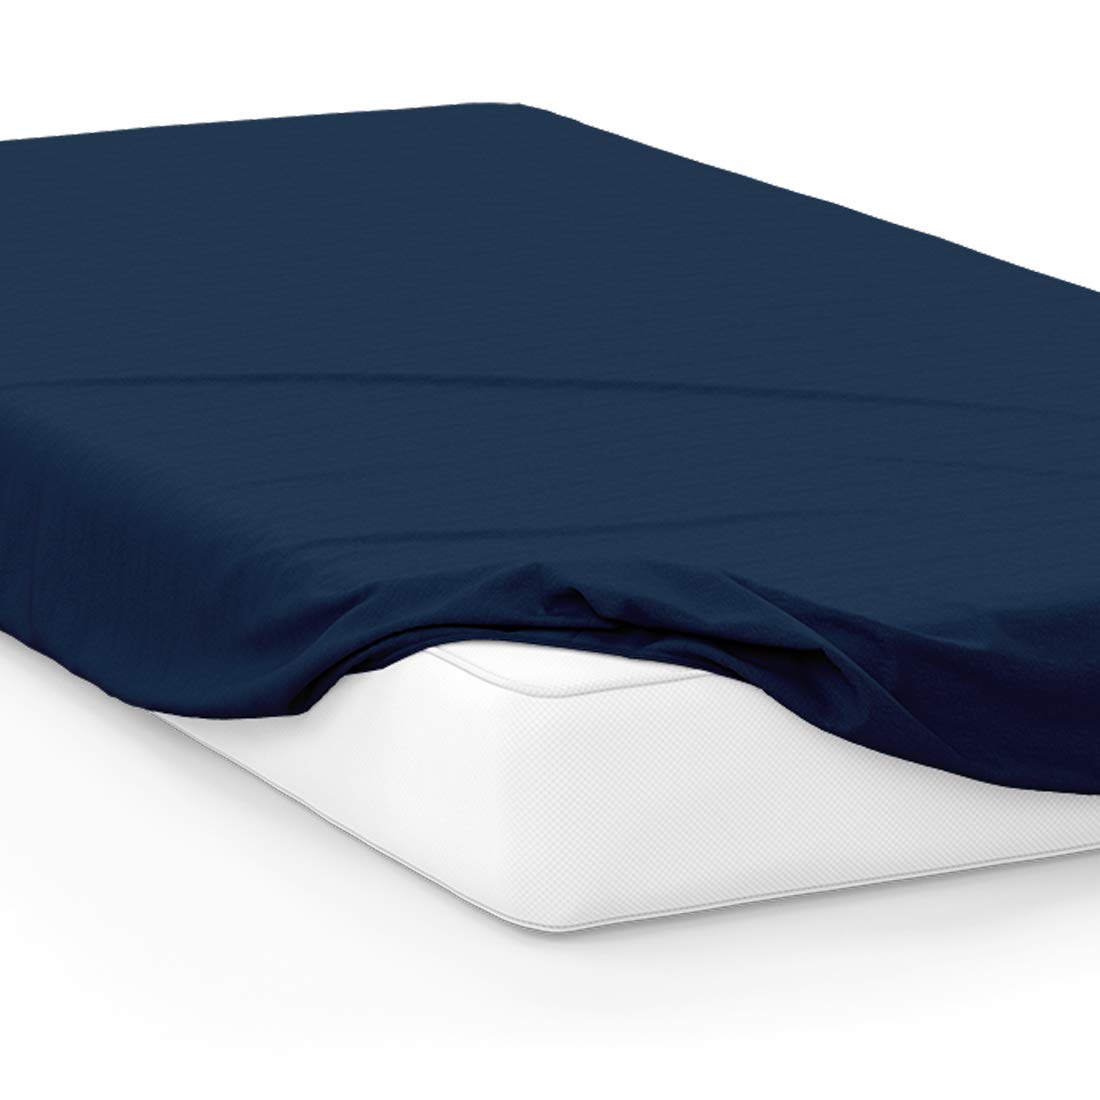 American Pillowcase College Dorm Twin XL Bed Fitted Mattress Sheet Ultra Soft Hypoallergenic Wrinkle-Free, Stain, and Fade Resistant - Navy Blue PMS 289